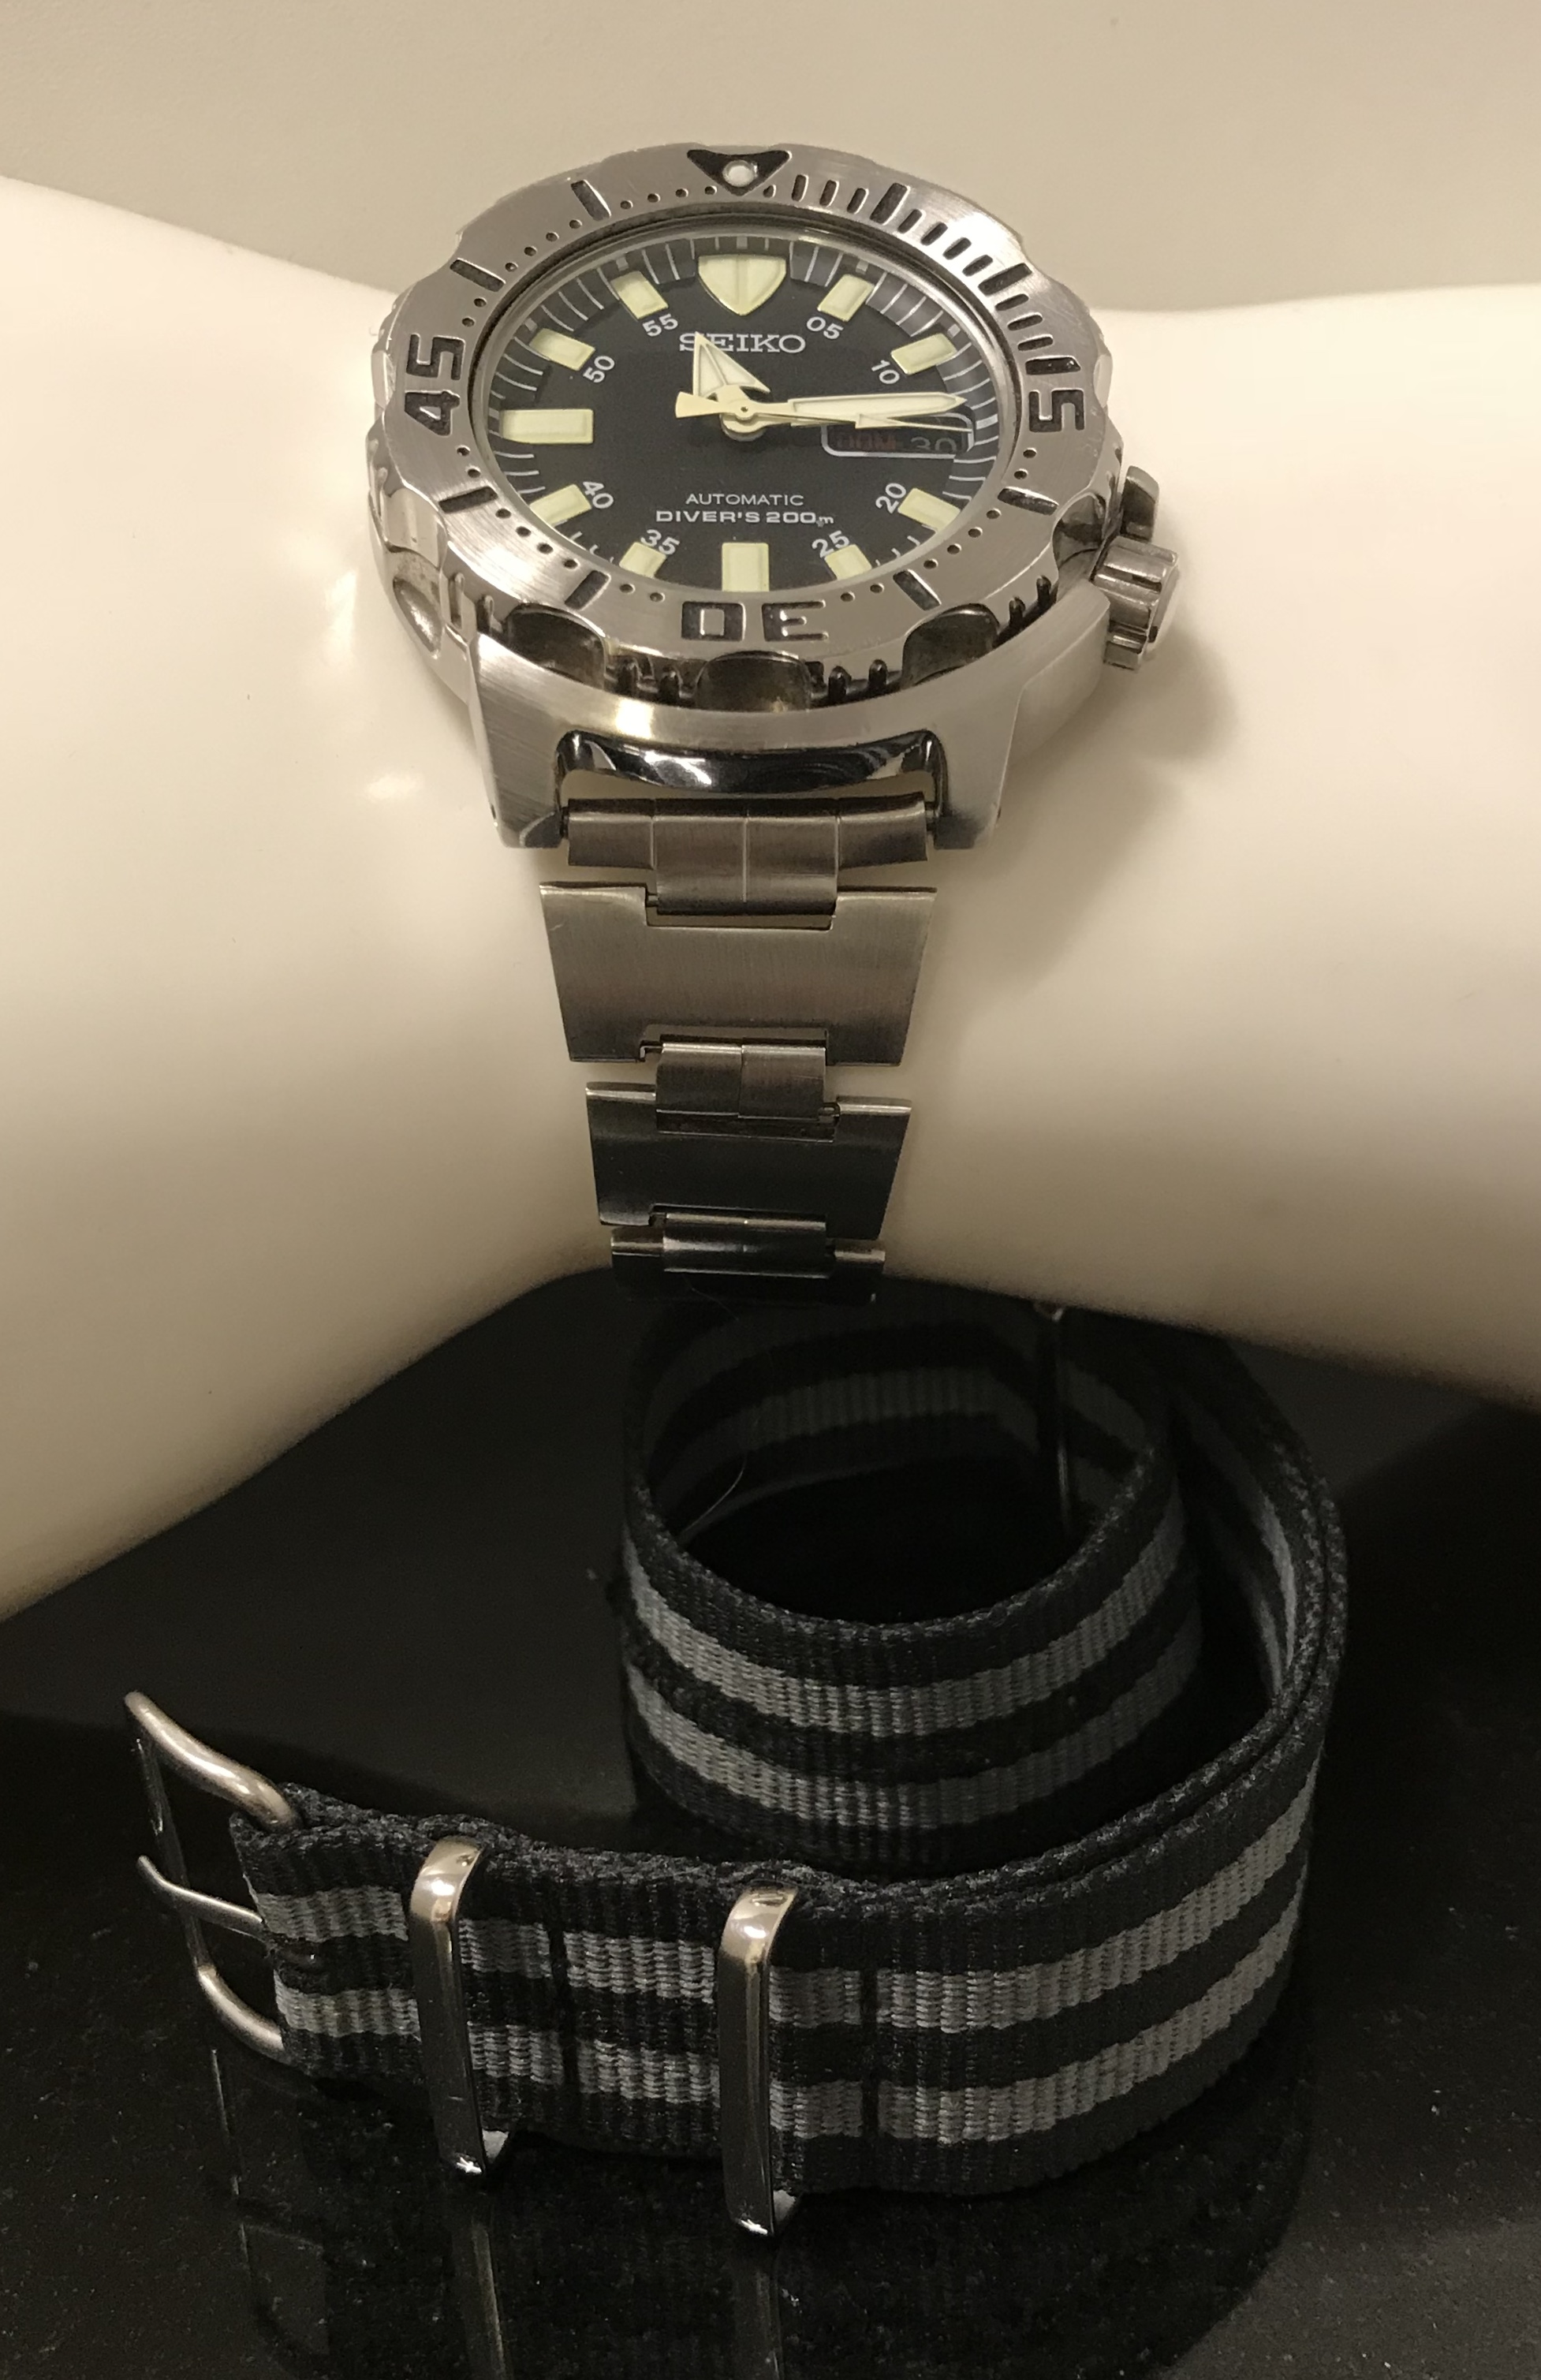 Seiko Automatic Divers 200m - Image 9 of 10